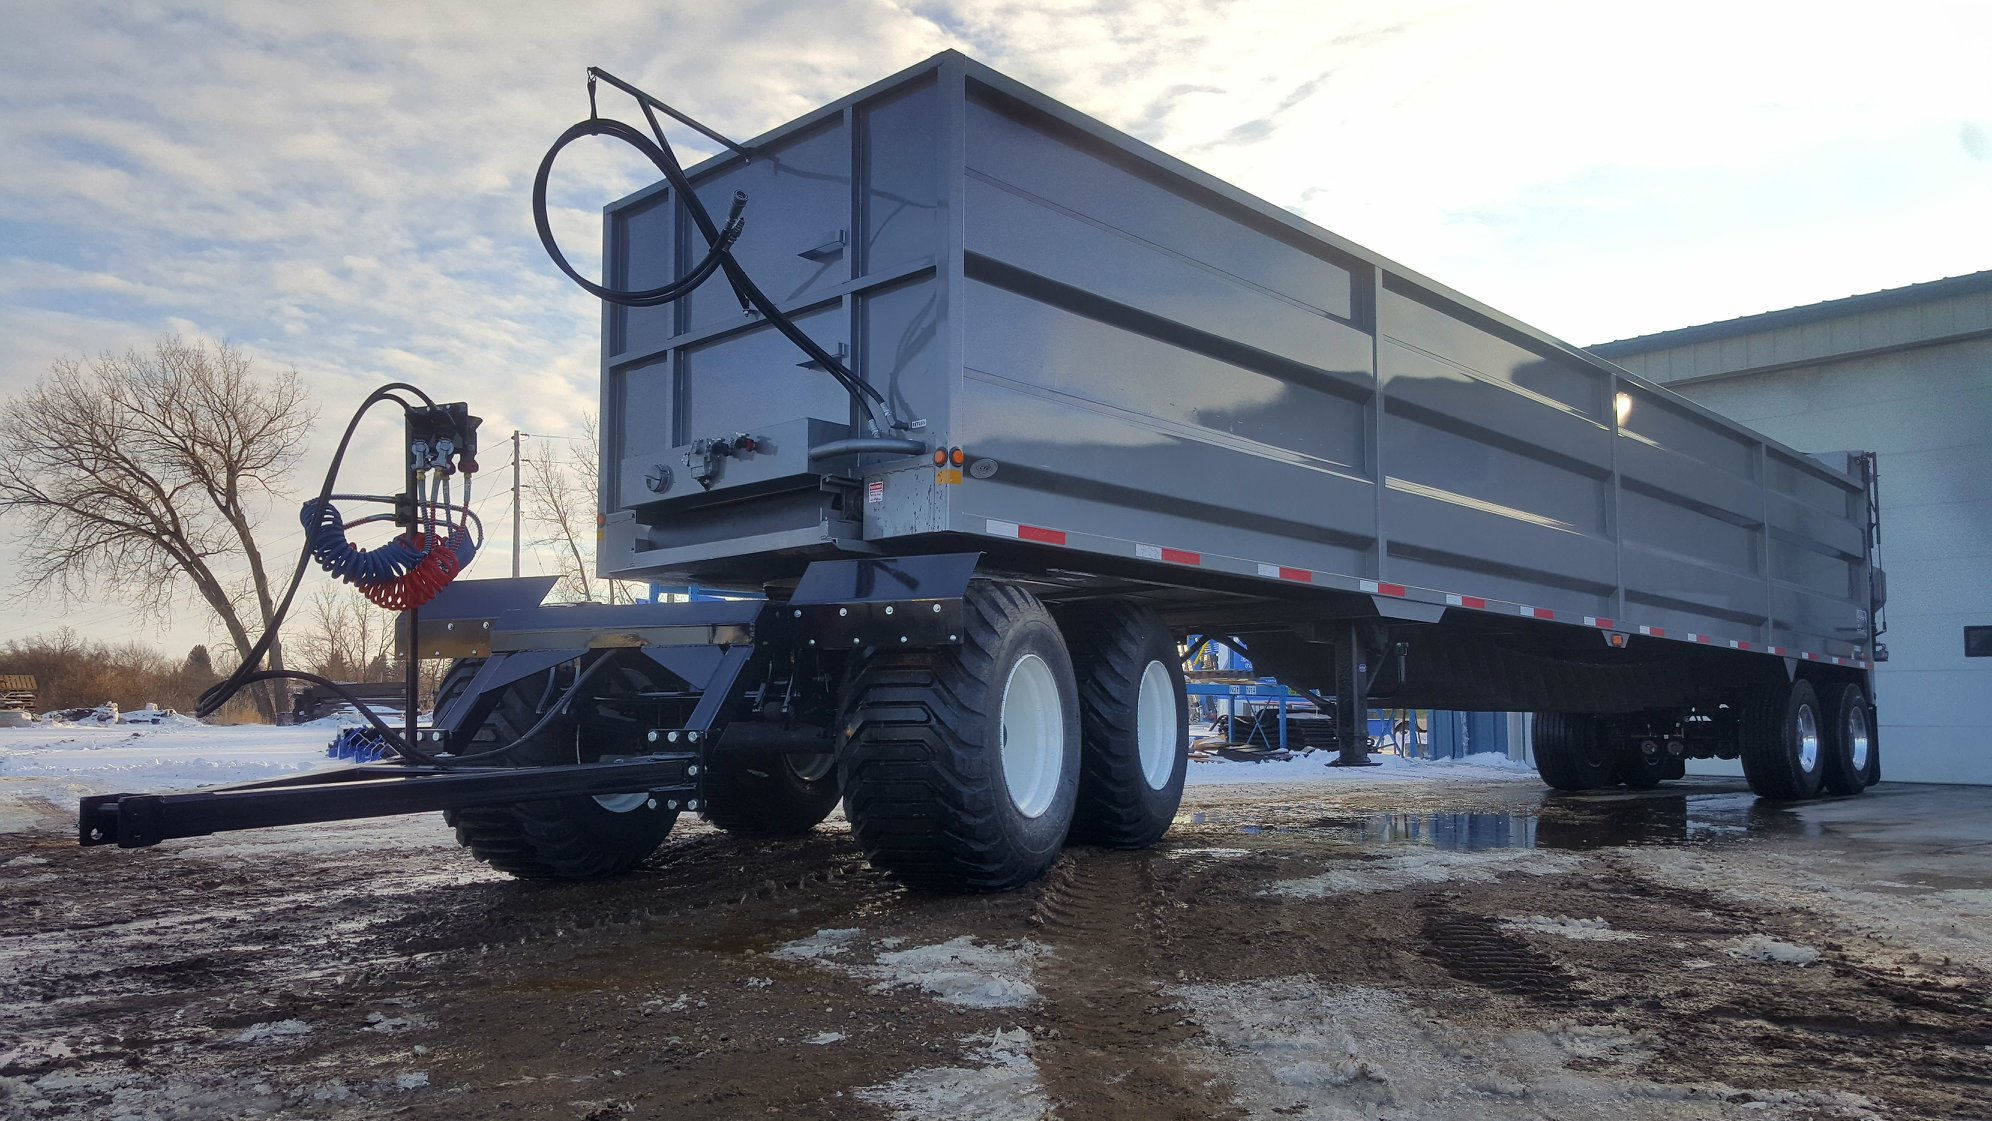 Safe T Pull On Twitter What Do You Think Of Our New Product The Converter Dolly It Allows You To Hook A Field Tractor Up To A Semi Trailer And This Model Features Floater